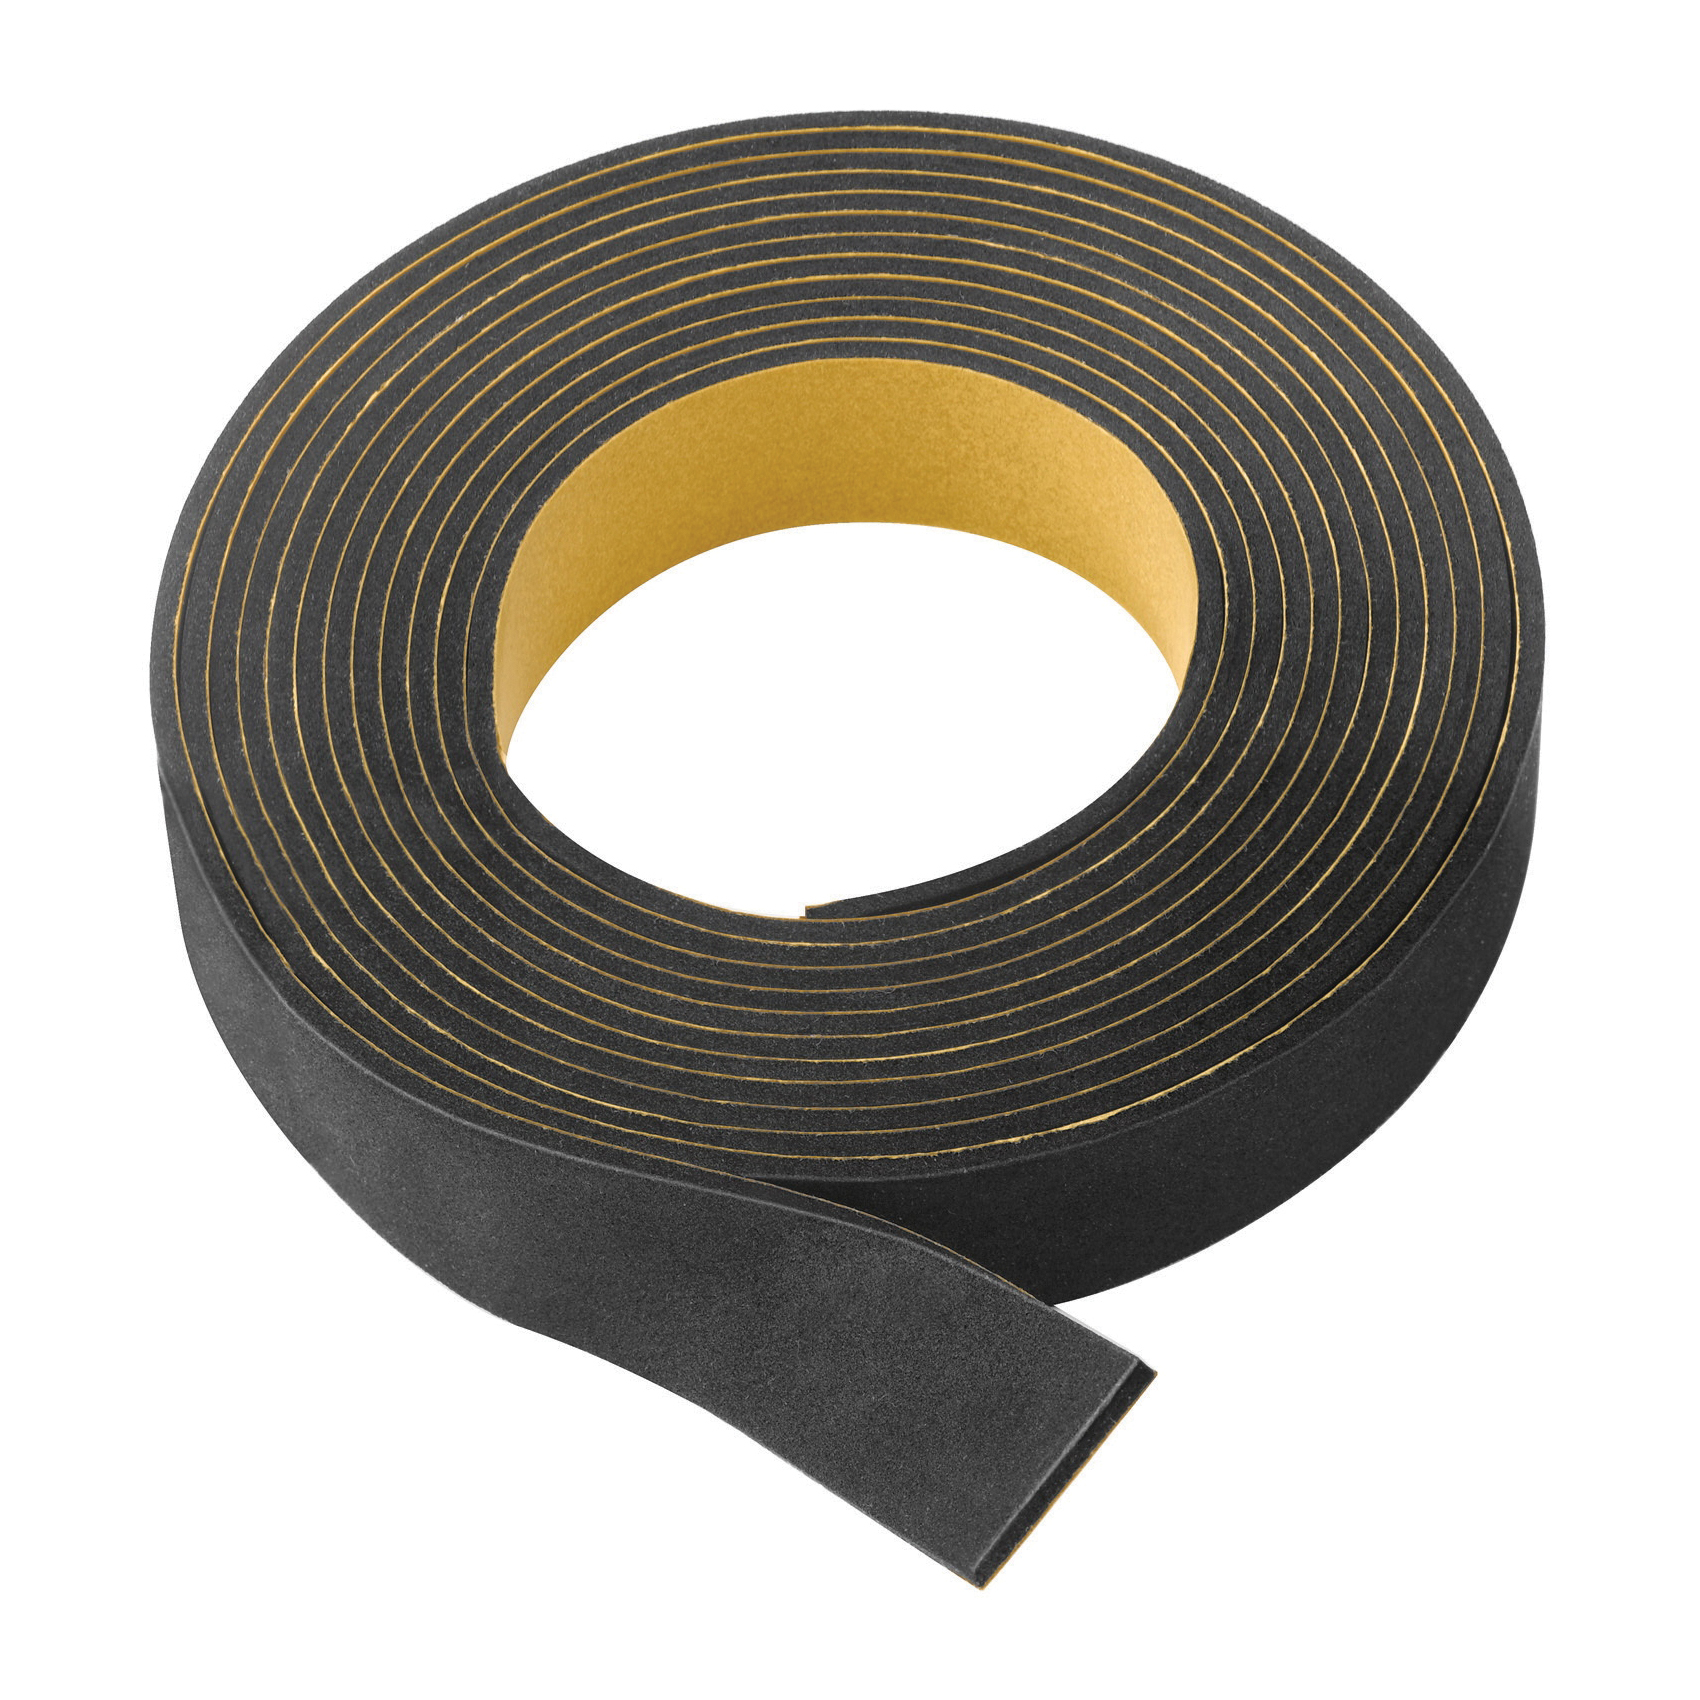 DeWALT® TrackSaw™ DWS5032 Friction Strip, For Use With TrackSaw™ Cutting Systems